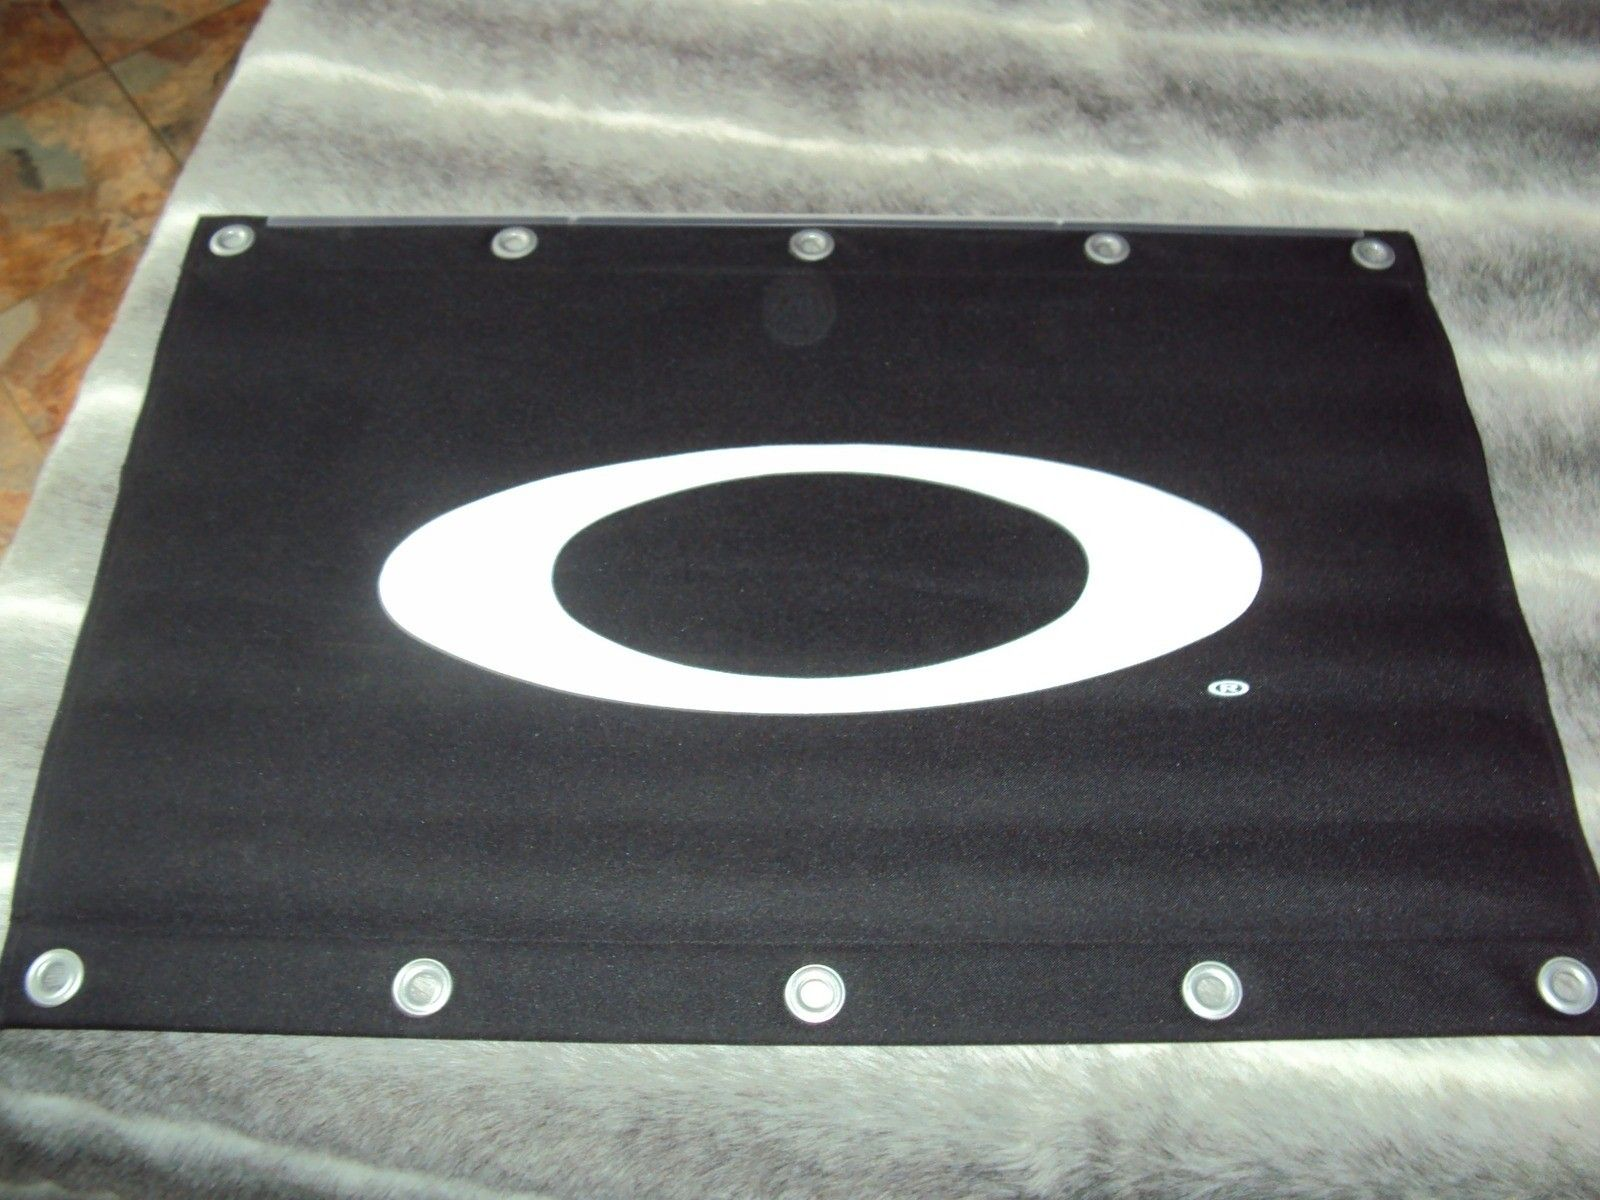 Oakley Frames And Cardboard Displays - 1347395818482.jpg